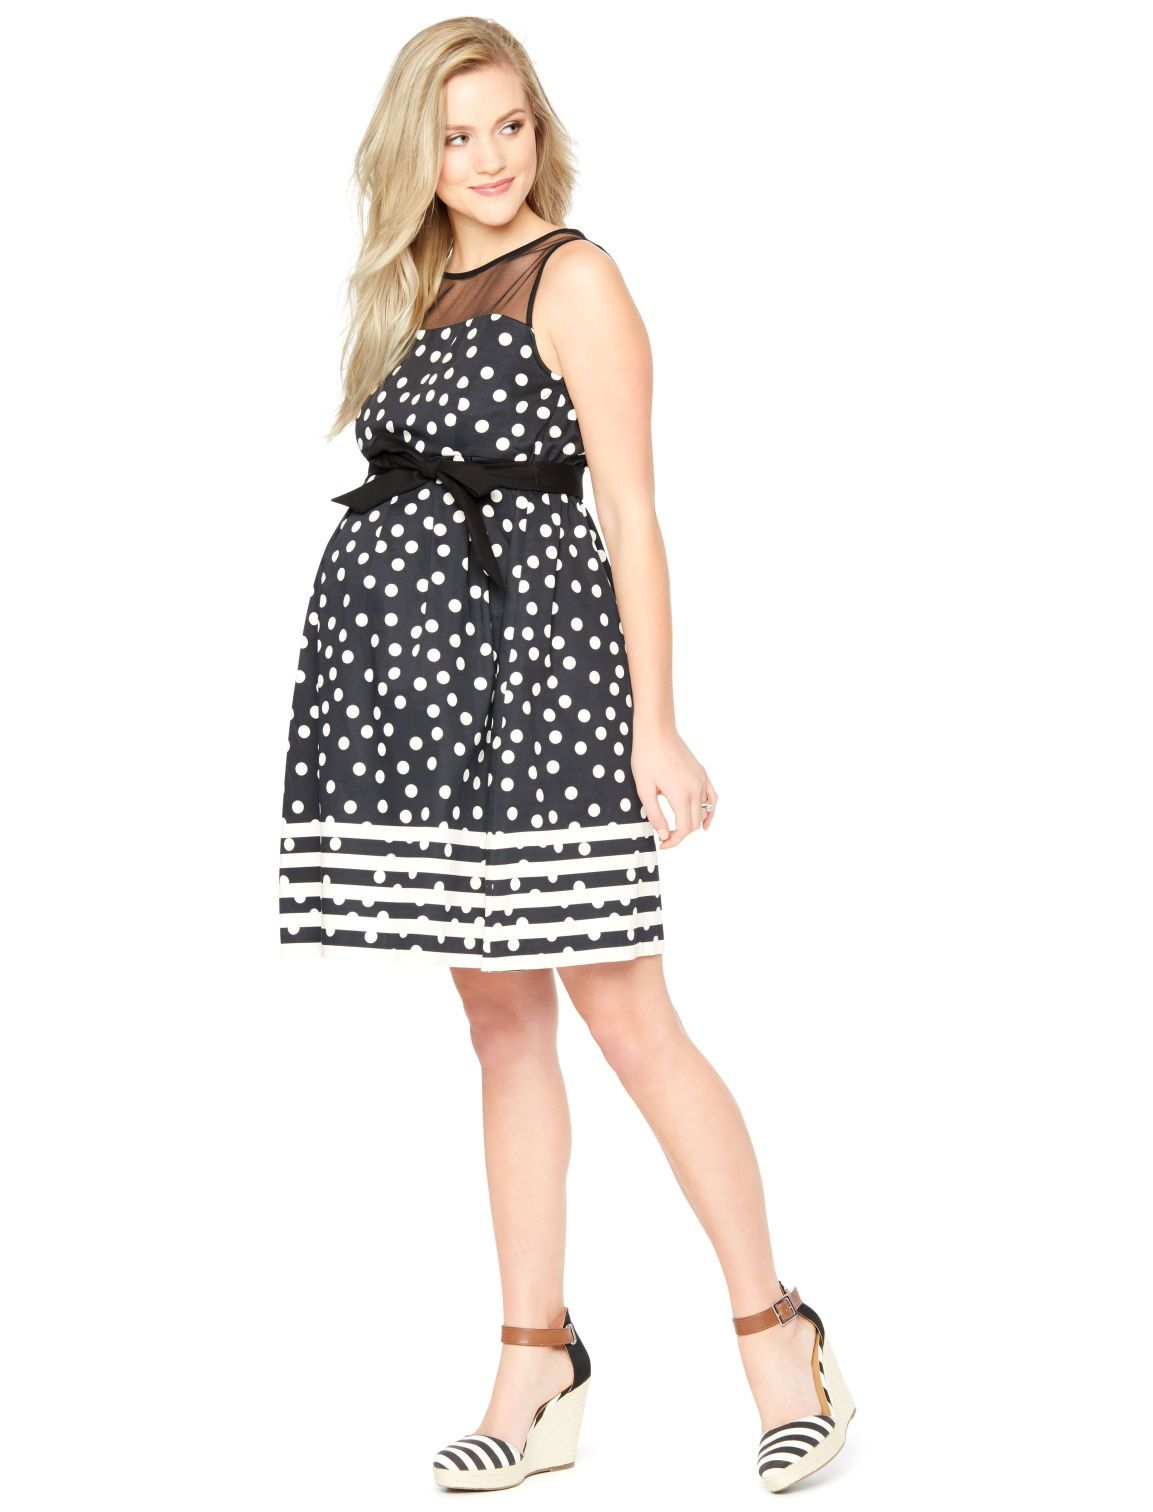 Dots stripes bows make for the perfect pregnancy dress dots stripes bows make for the perfect pregnancy dress sleeveless pleated maternity dress ombrellifo Choice Image